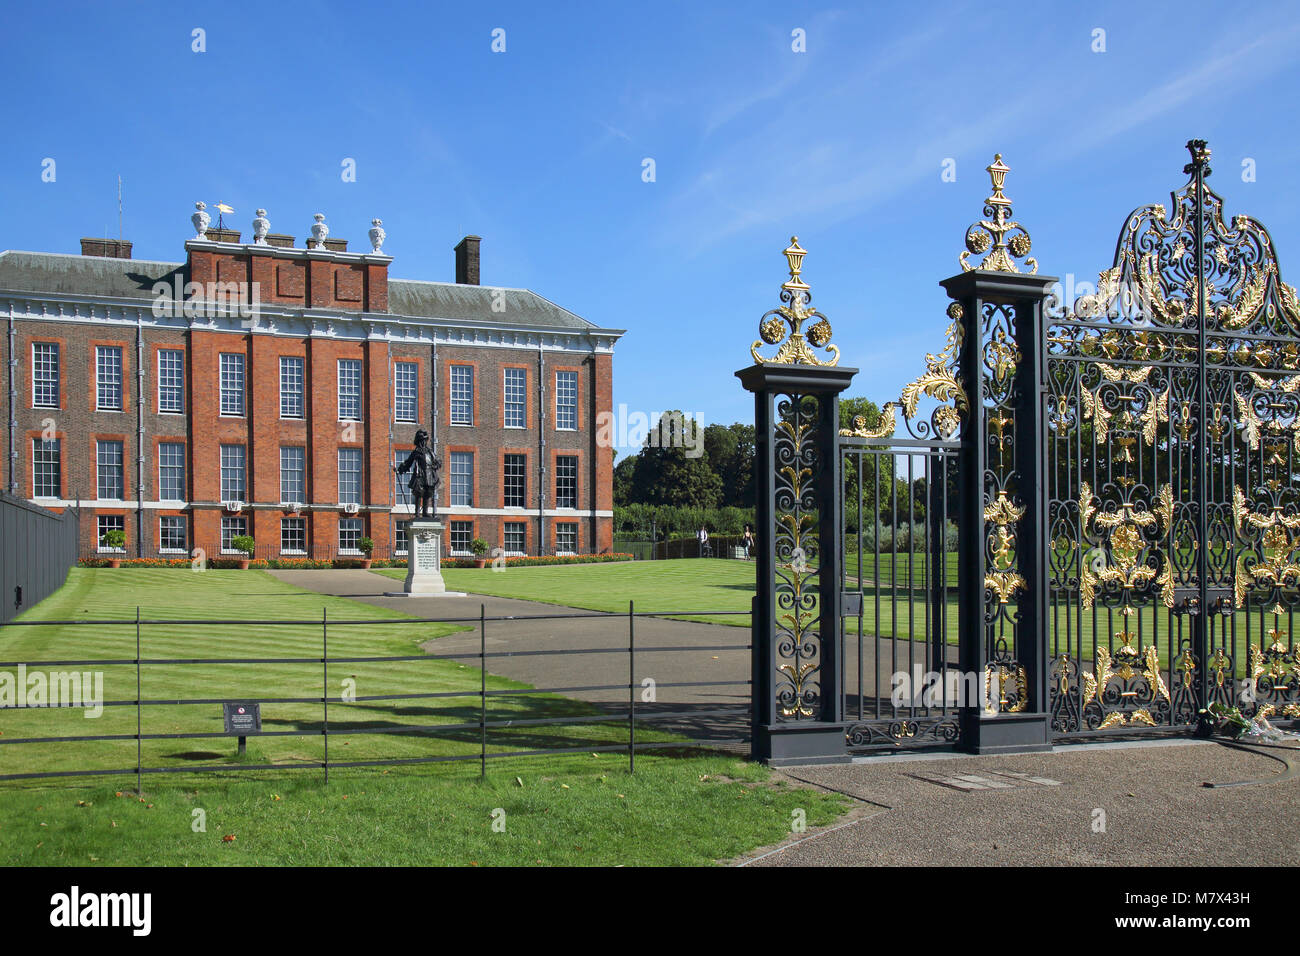 kensington palace gates in hyde park london - Stock Image